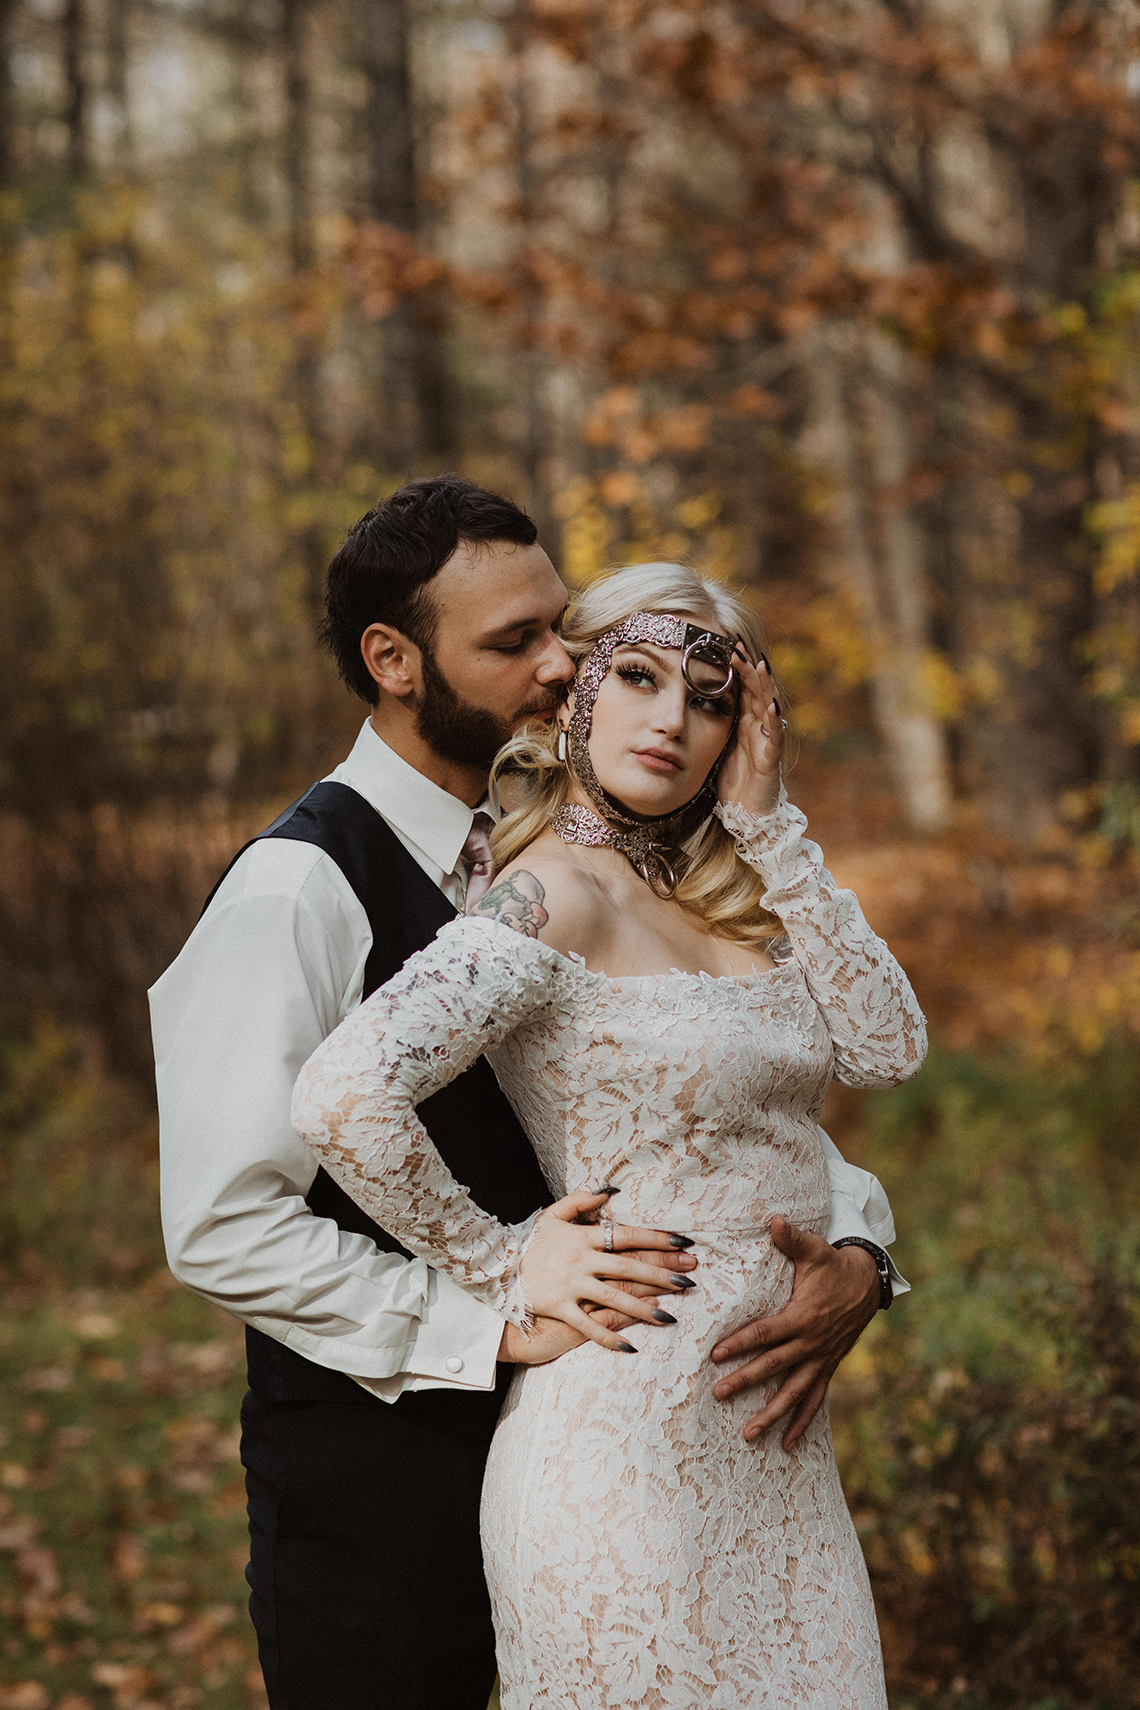 Woodsy Boho Cabin Wedding Inspiration in New Hampshire – Haus of Gravity – Compass Collective 41